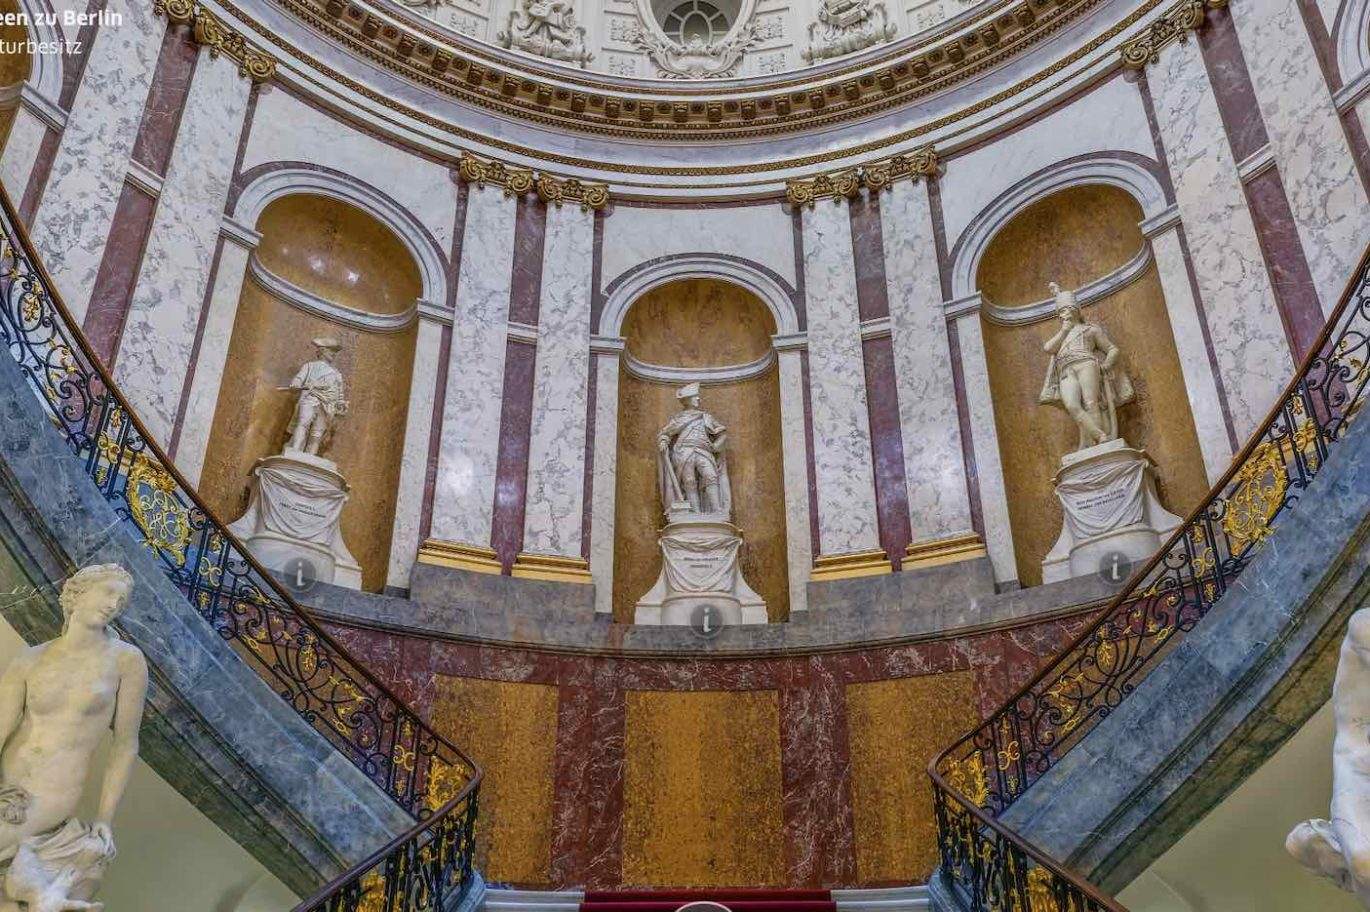 bode museum berlin virtual tour